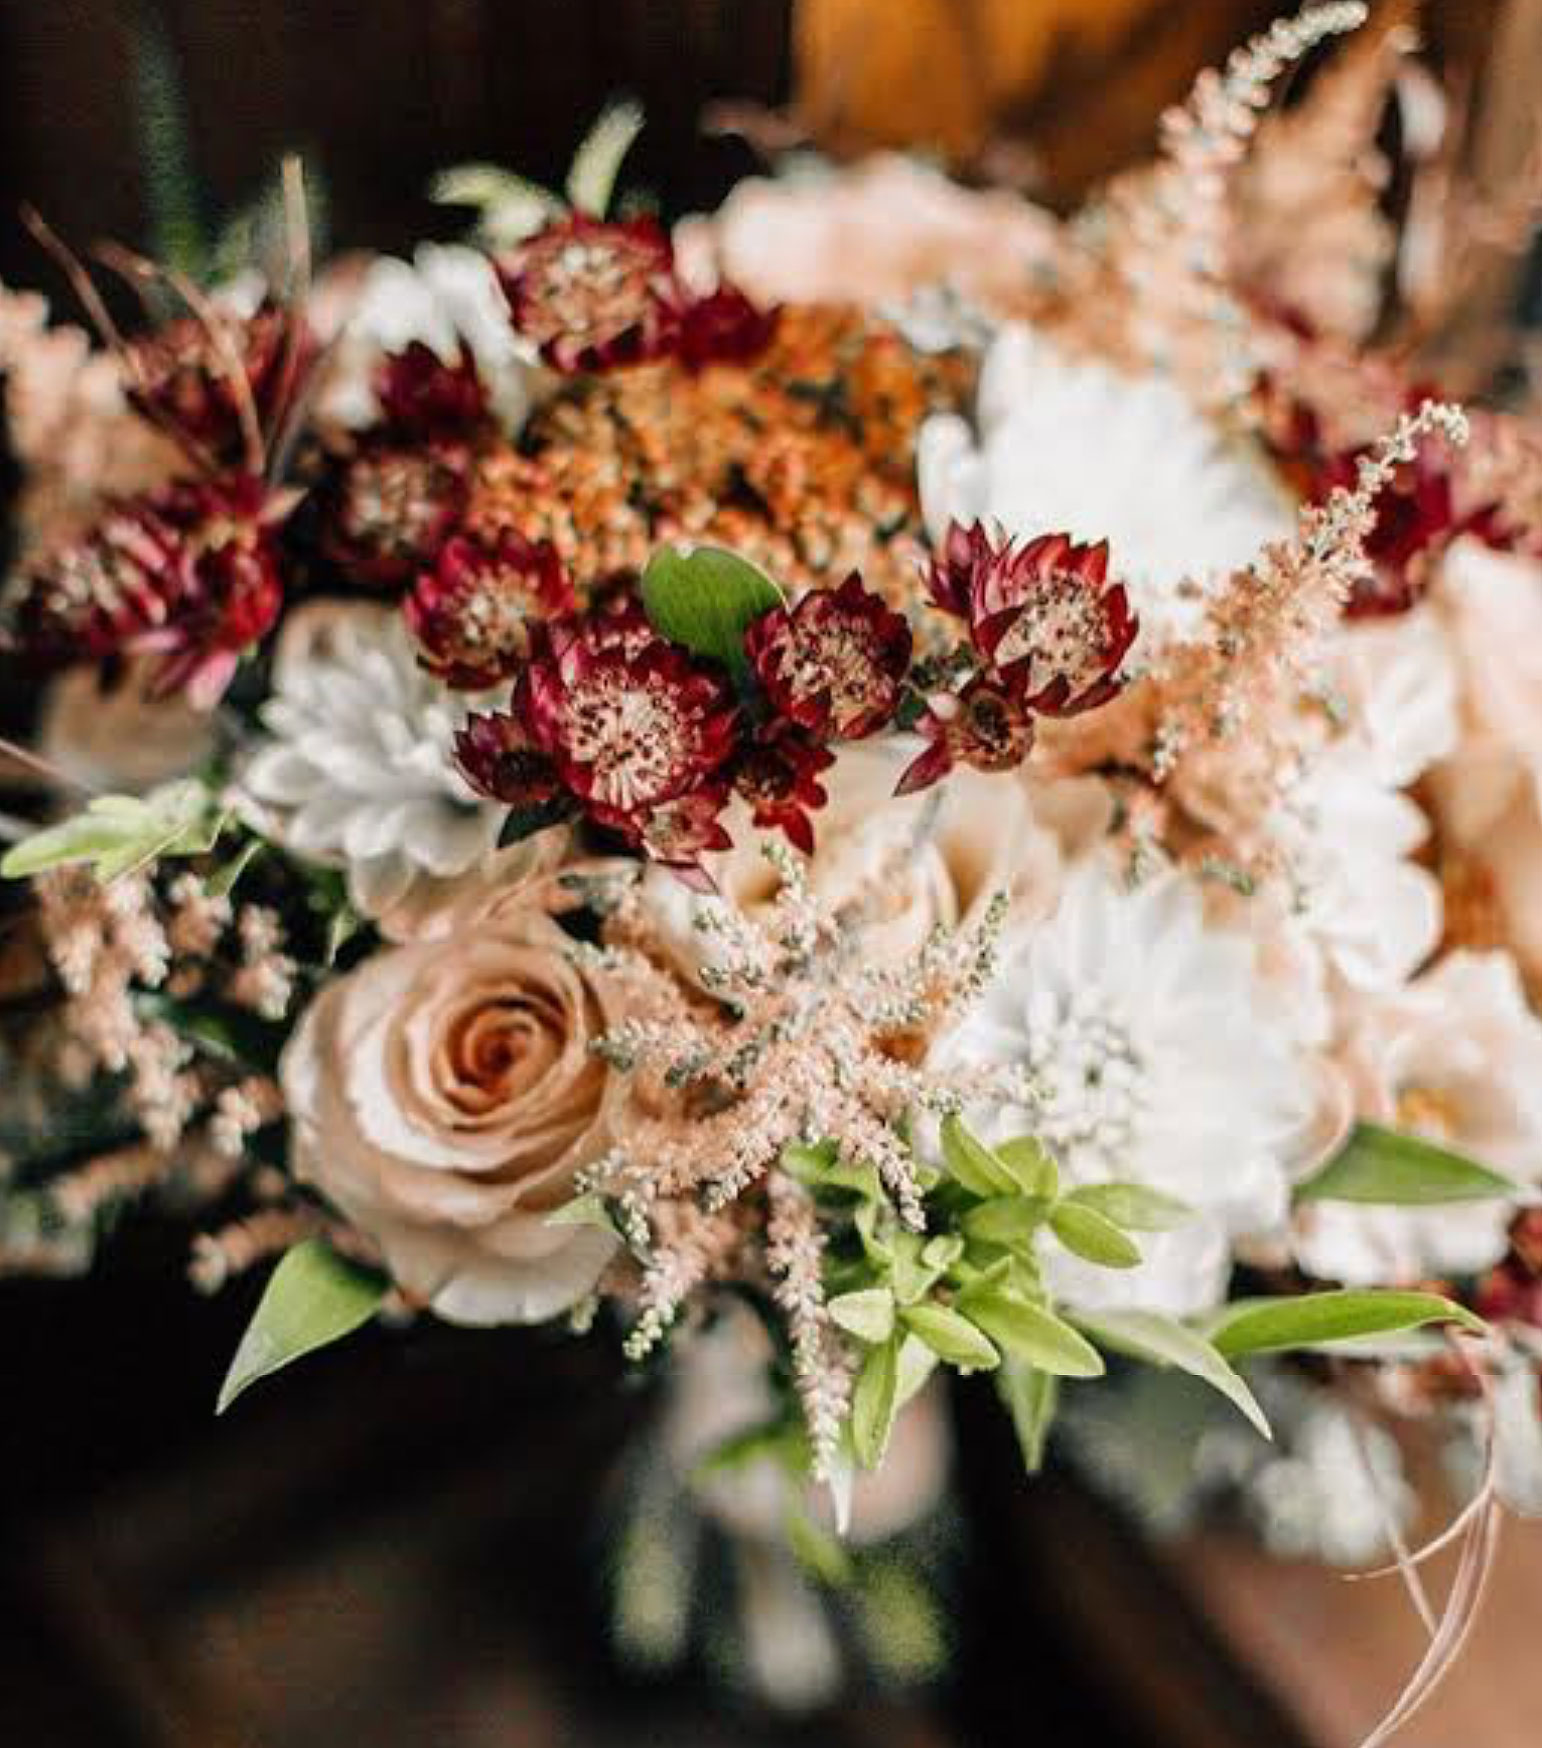 flower-centerpiece-wedding-eventmates.jpg